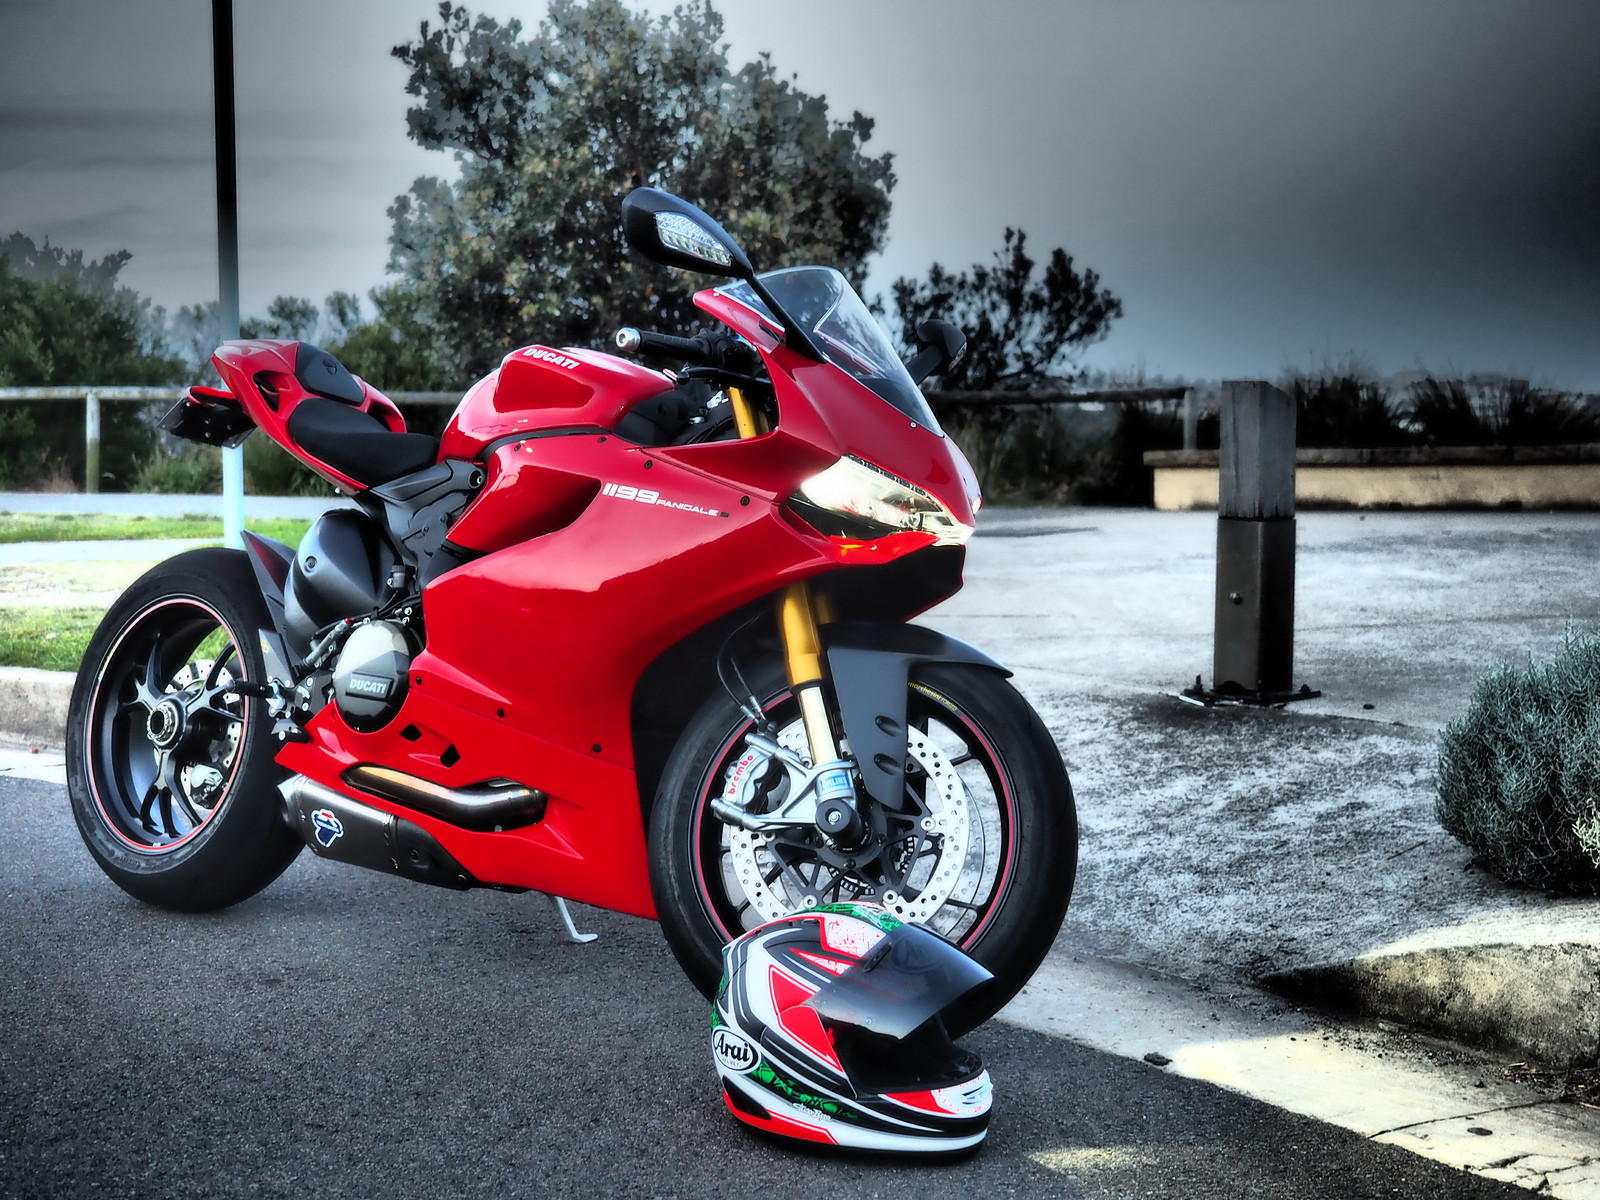 Ducati 1299 Panigale S 4k Wallpapers: Gorgeous Ducati 1299 Panigale S Wallpaper